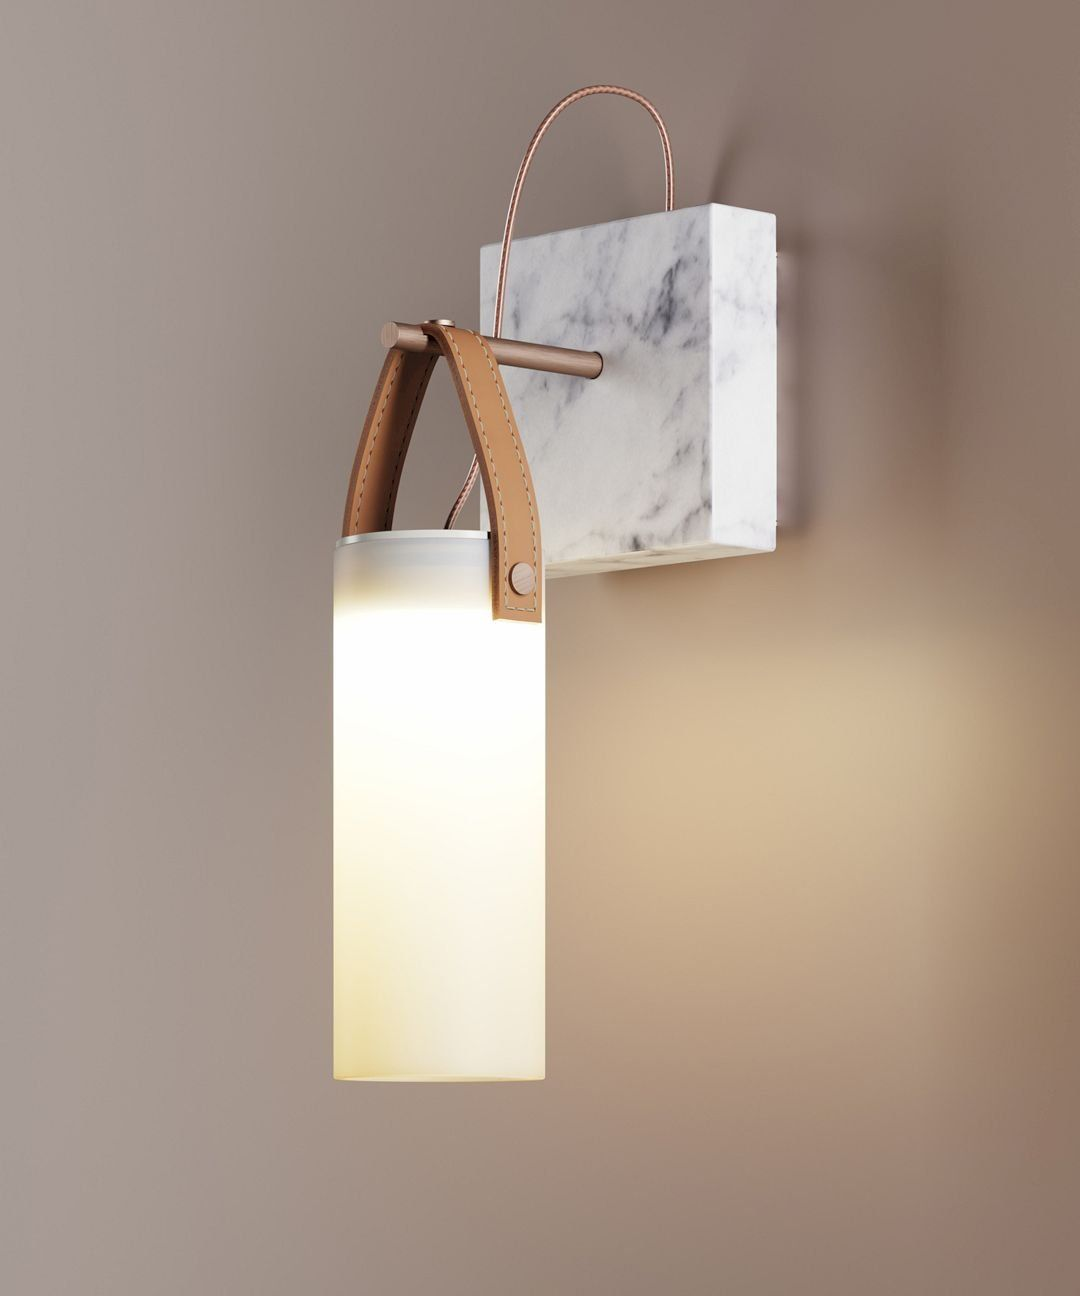 Eco A Frame A Glamping Cabin With Eco Consciousness Design And Gentle Connection With Nature Wall Lamp Design Wall Lamp Modern Wall Lamp